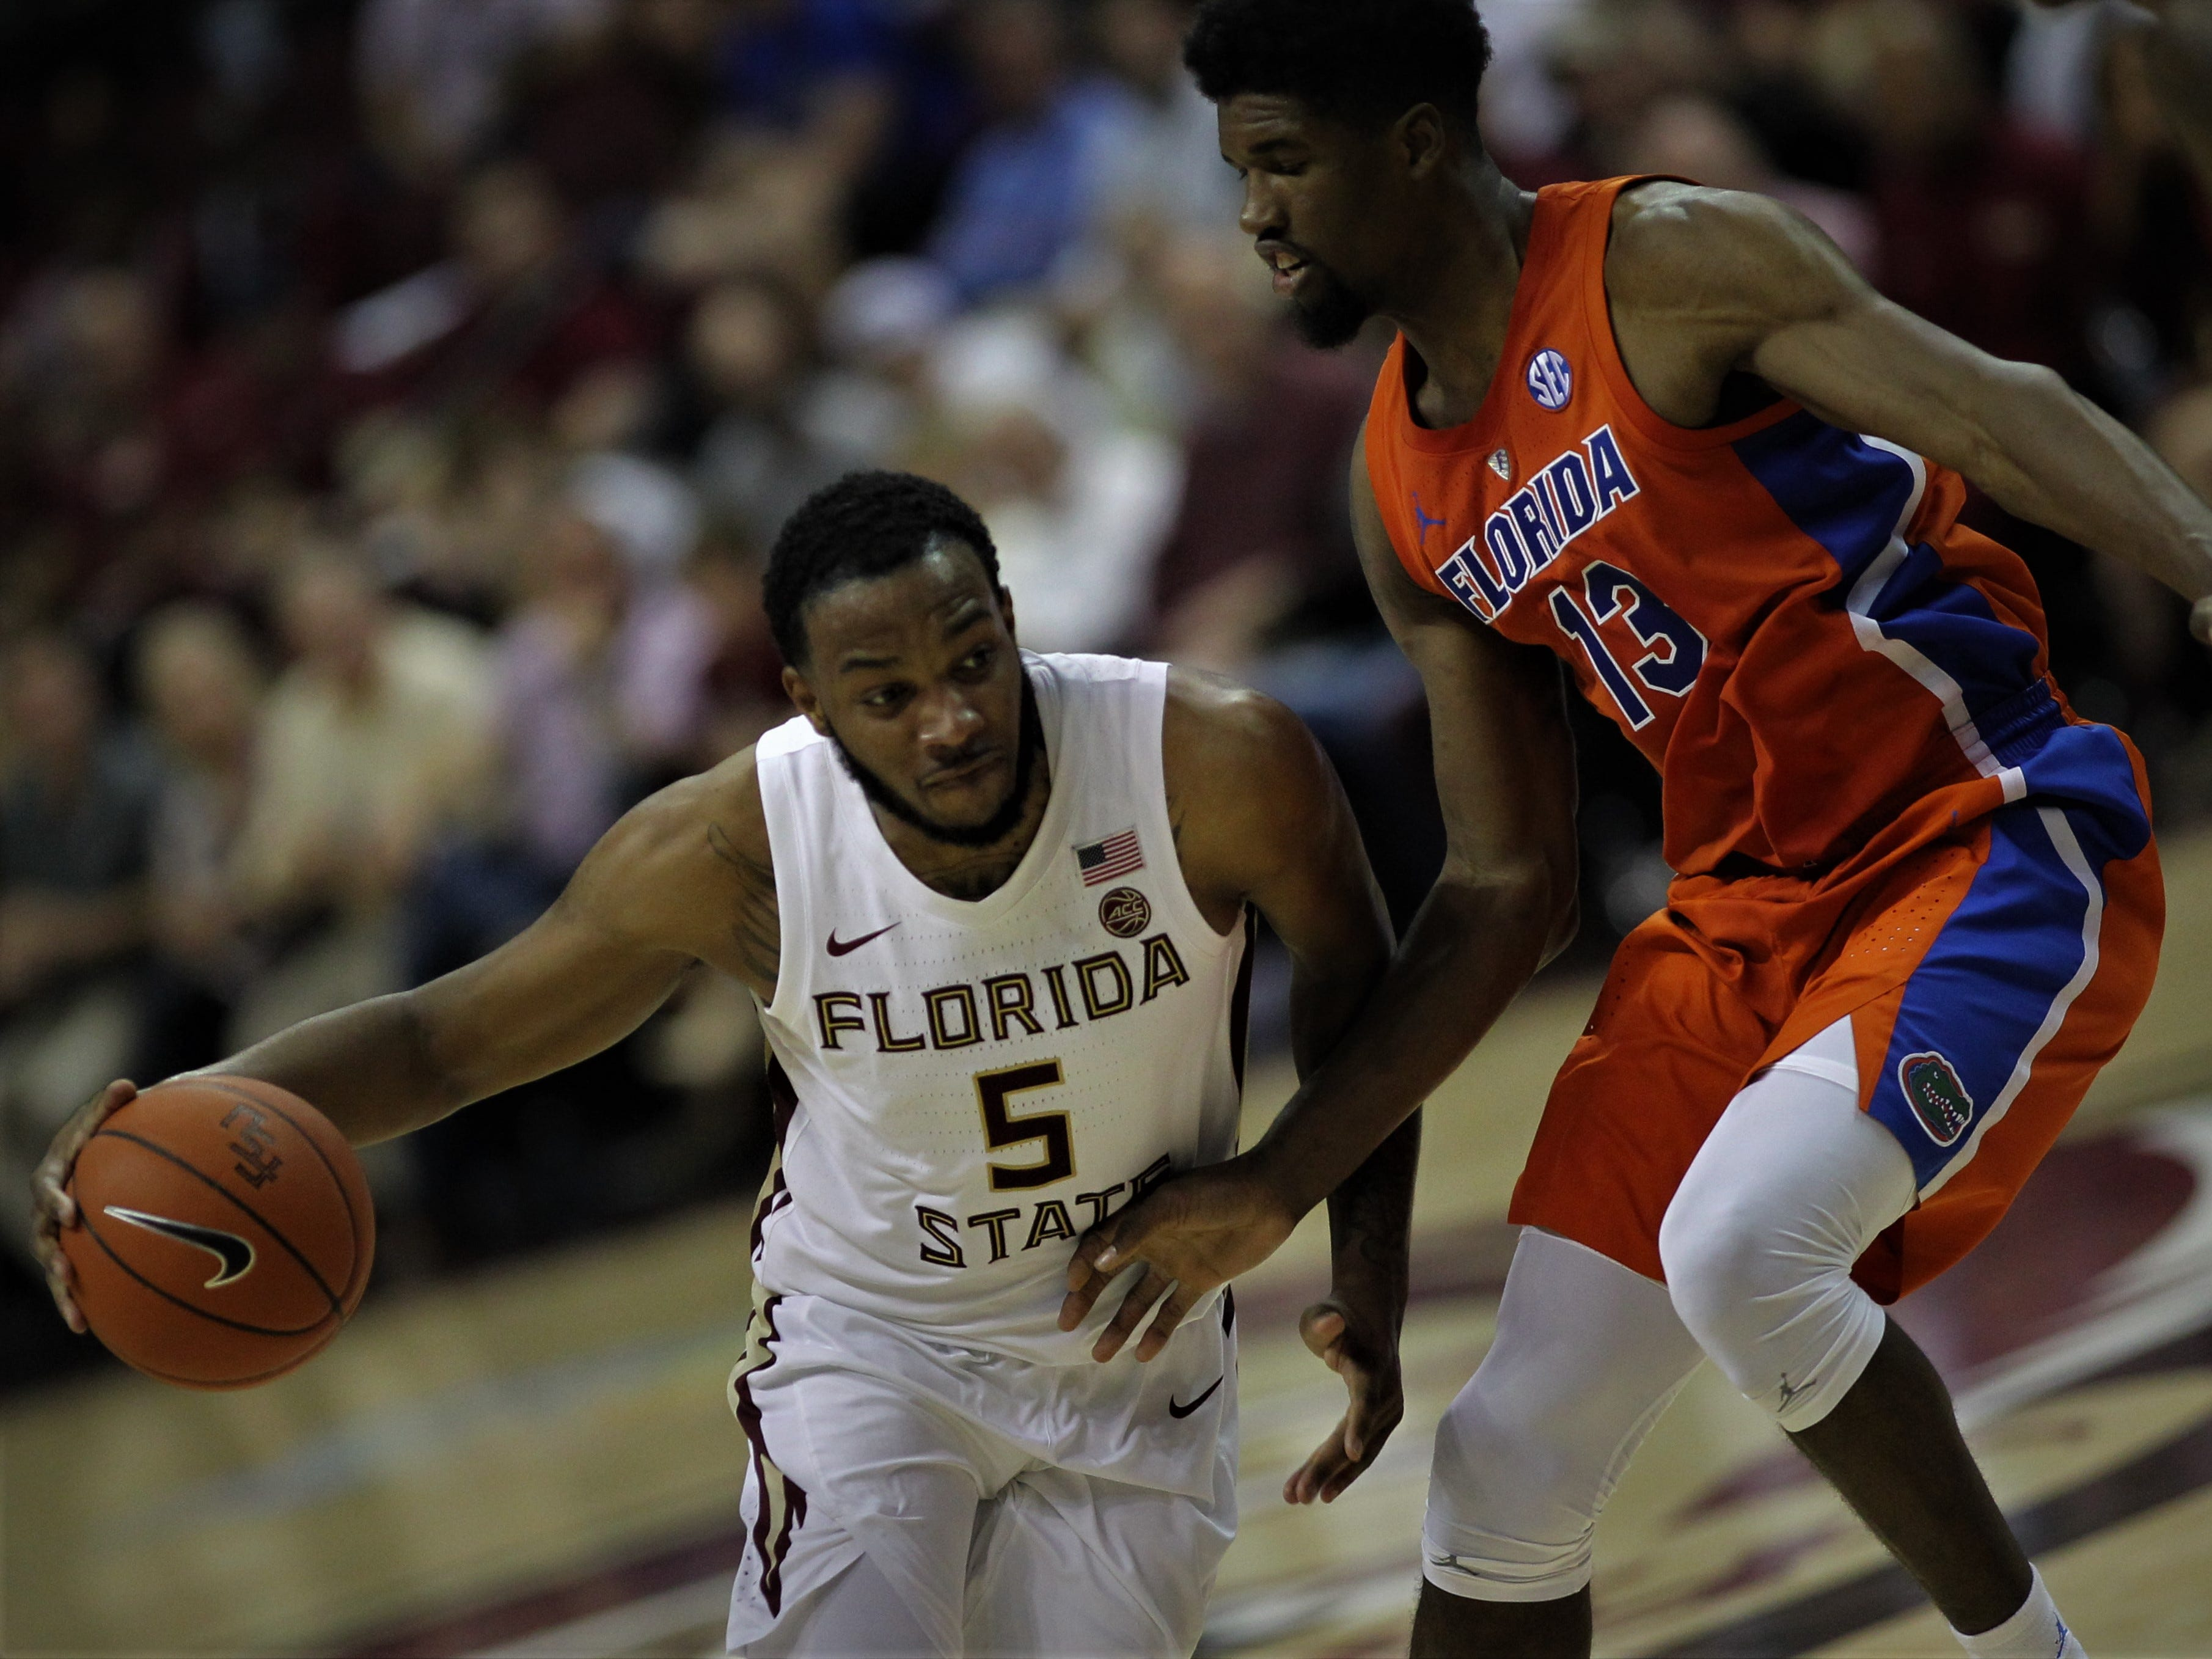 Florida State guard P.J. Savoy drives past Florida's Kevarrius Hayes during the Sunshine Showdown game Tuesday at the Tucker Civic Center.